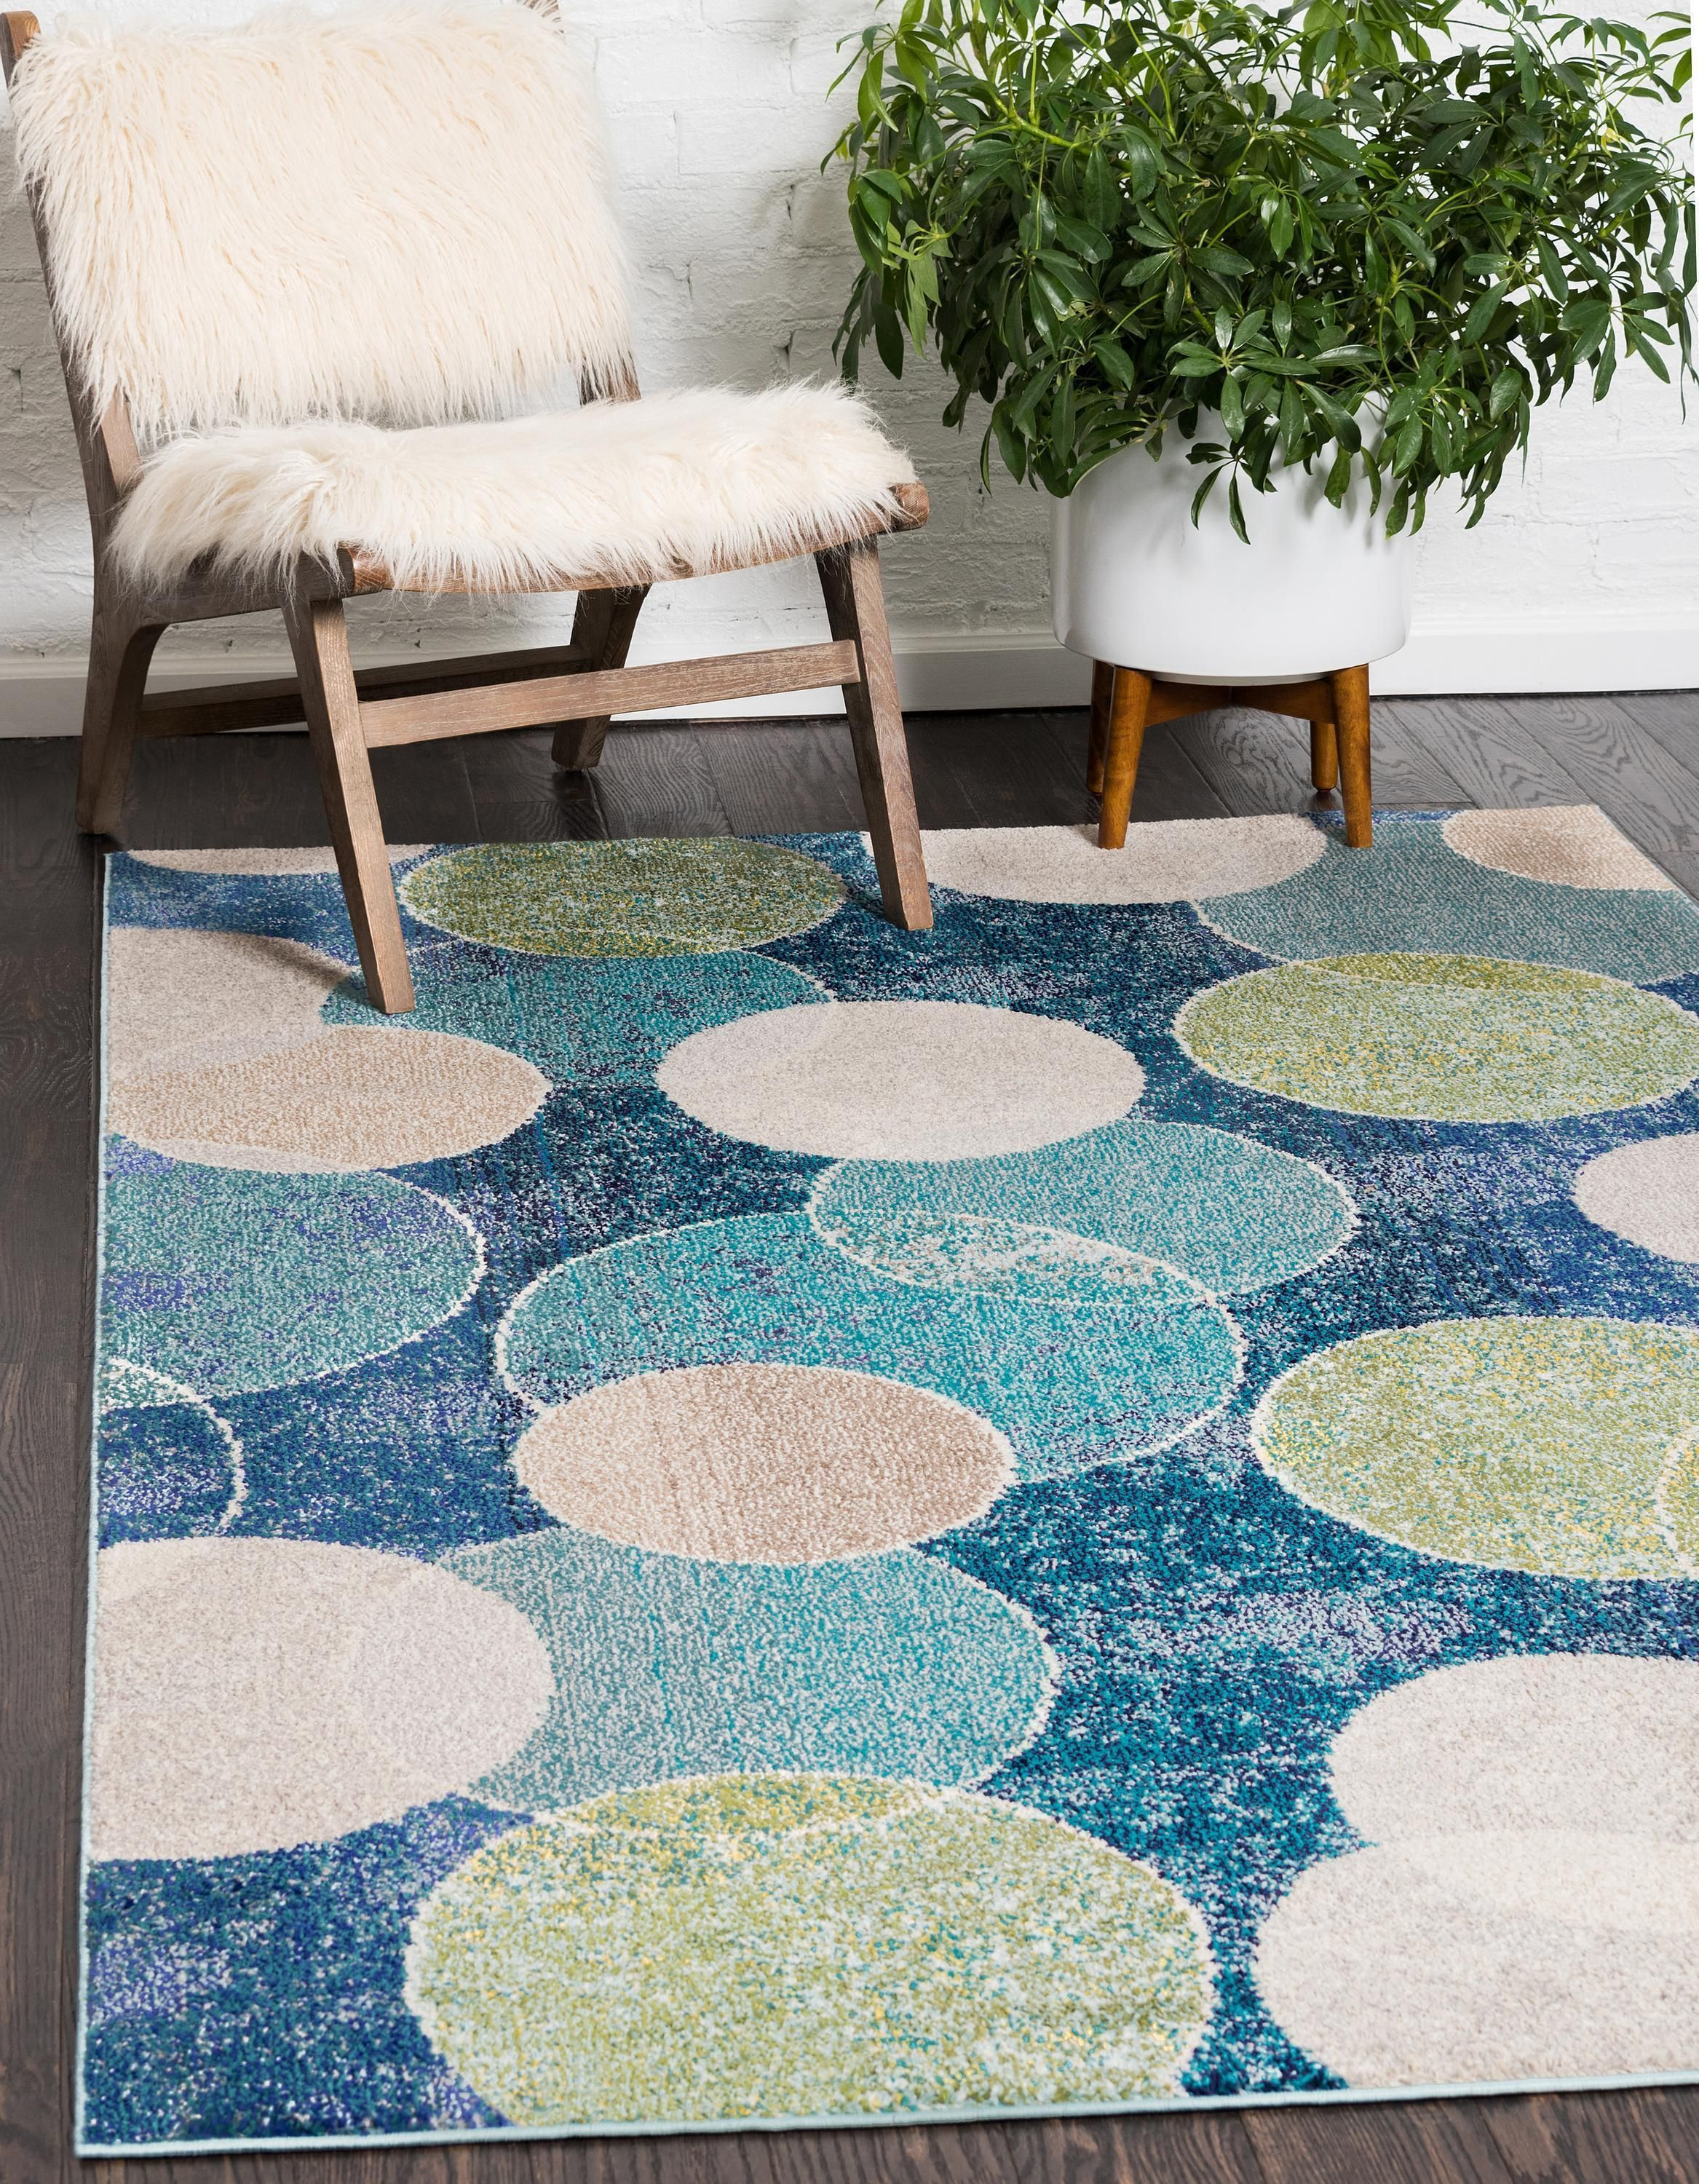 Otto Circle Area Rug In 2020 Area Rugs Unique Loom Boho Living Room